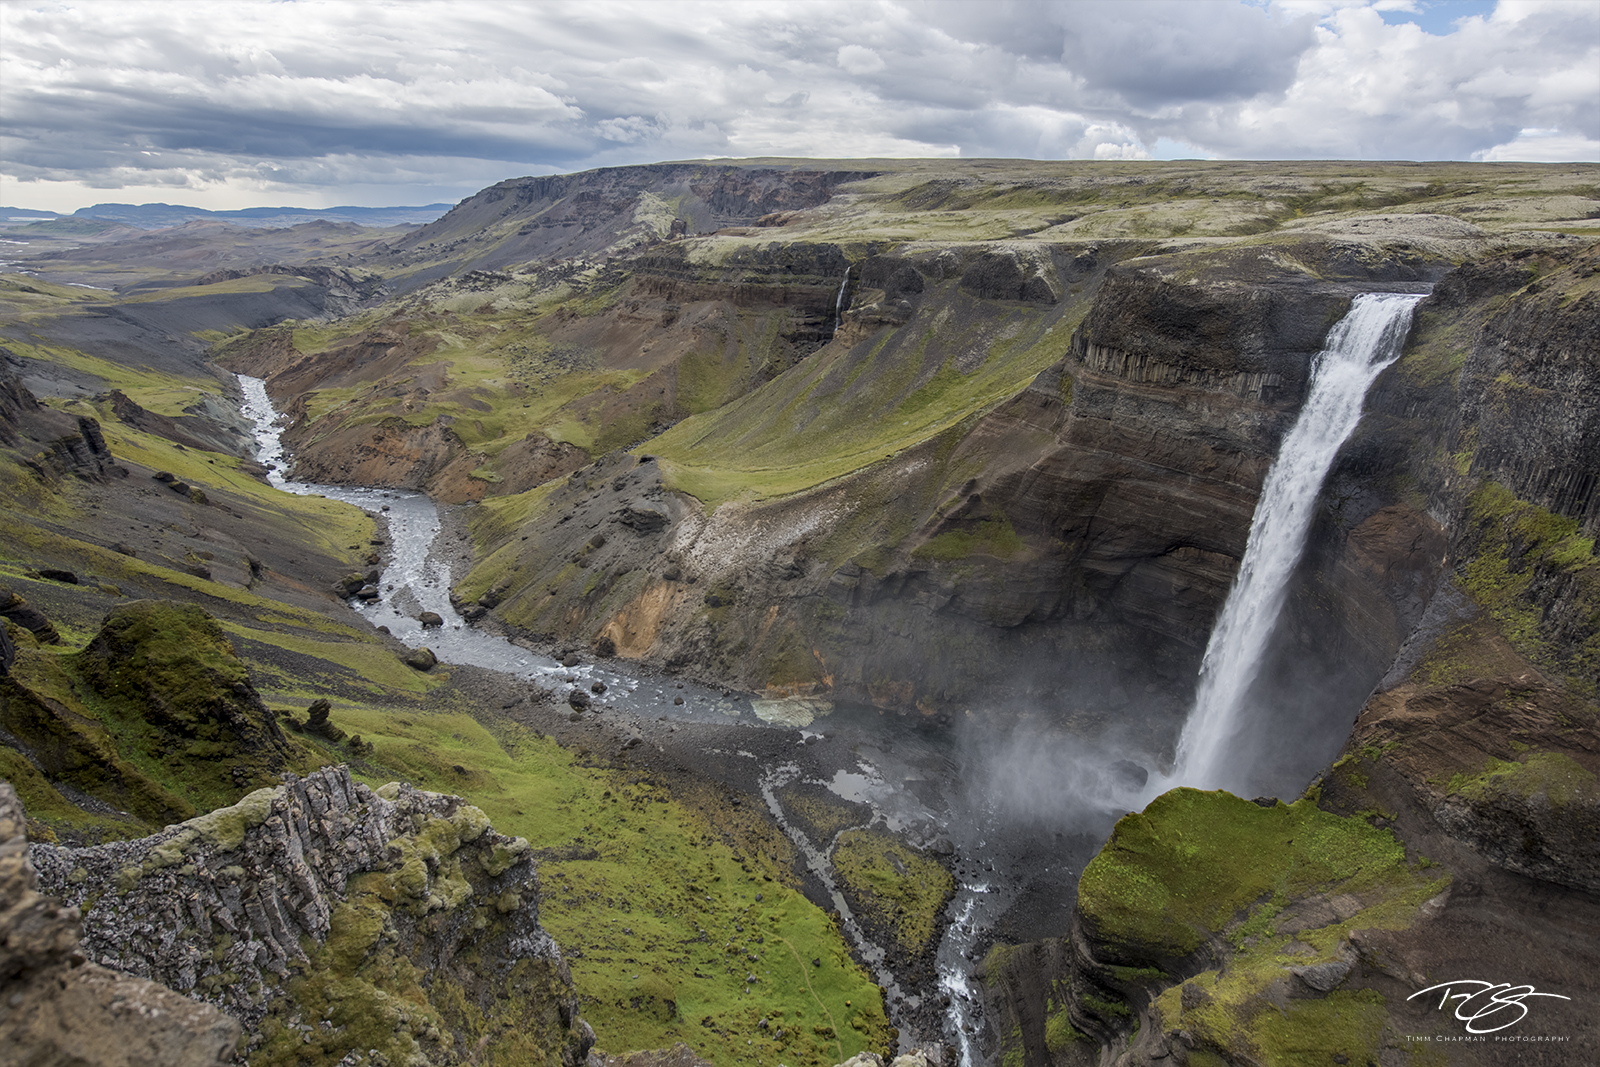 iceland, highlands, river, fossa river, Fossa, haifoss, waterfall, waterfalls, photo